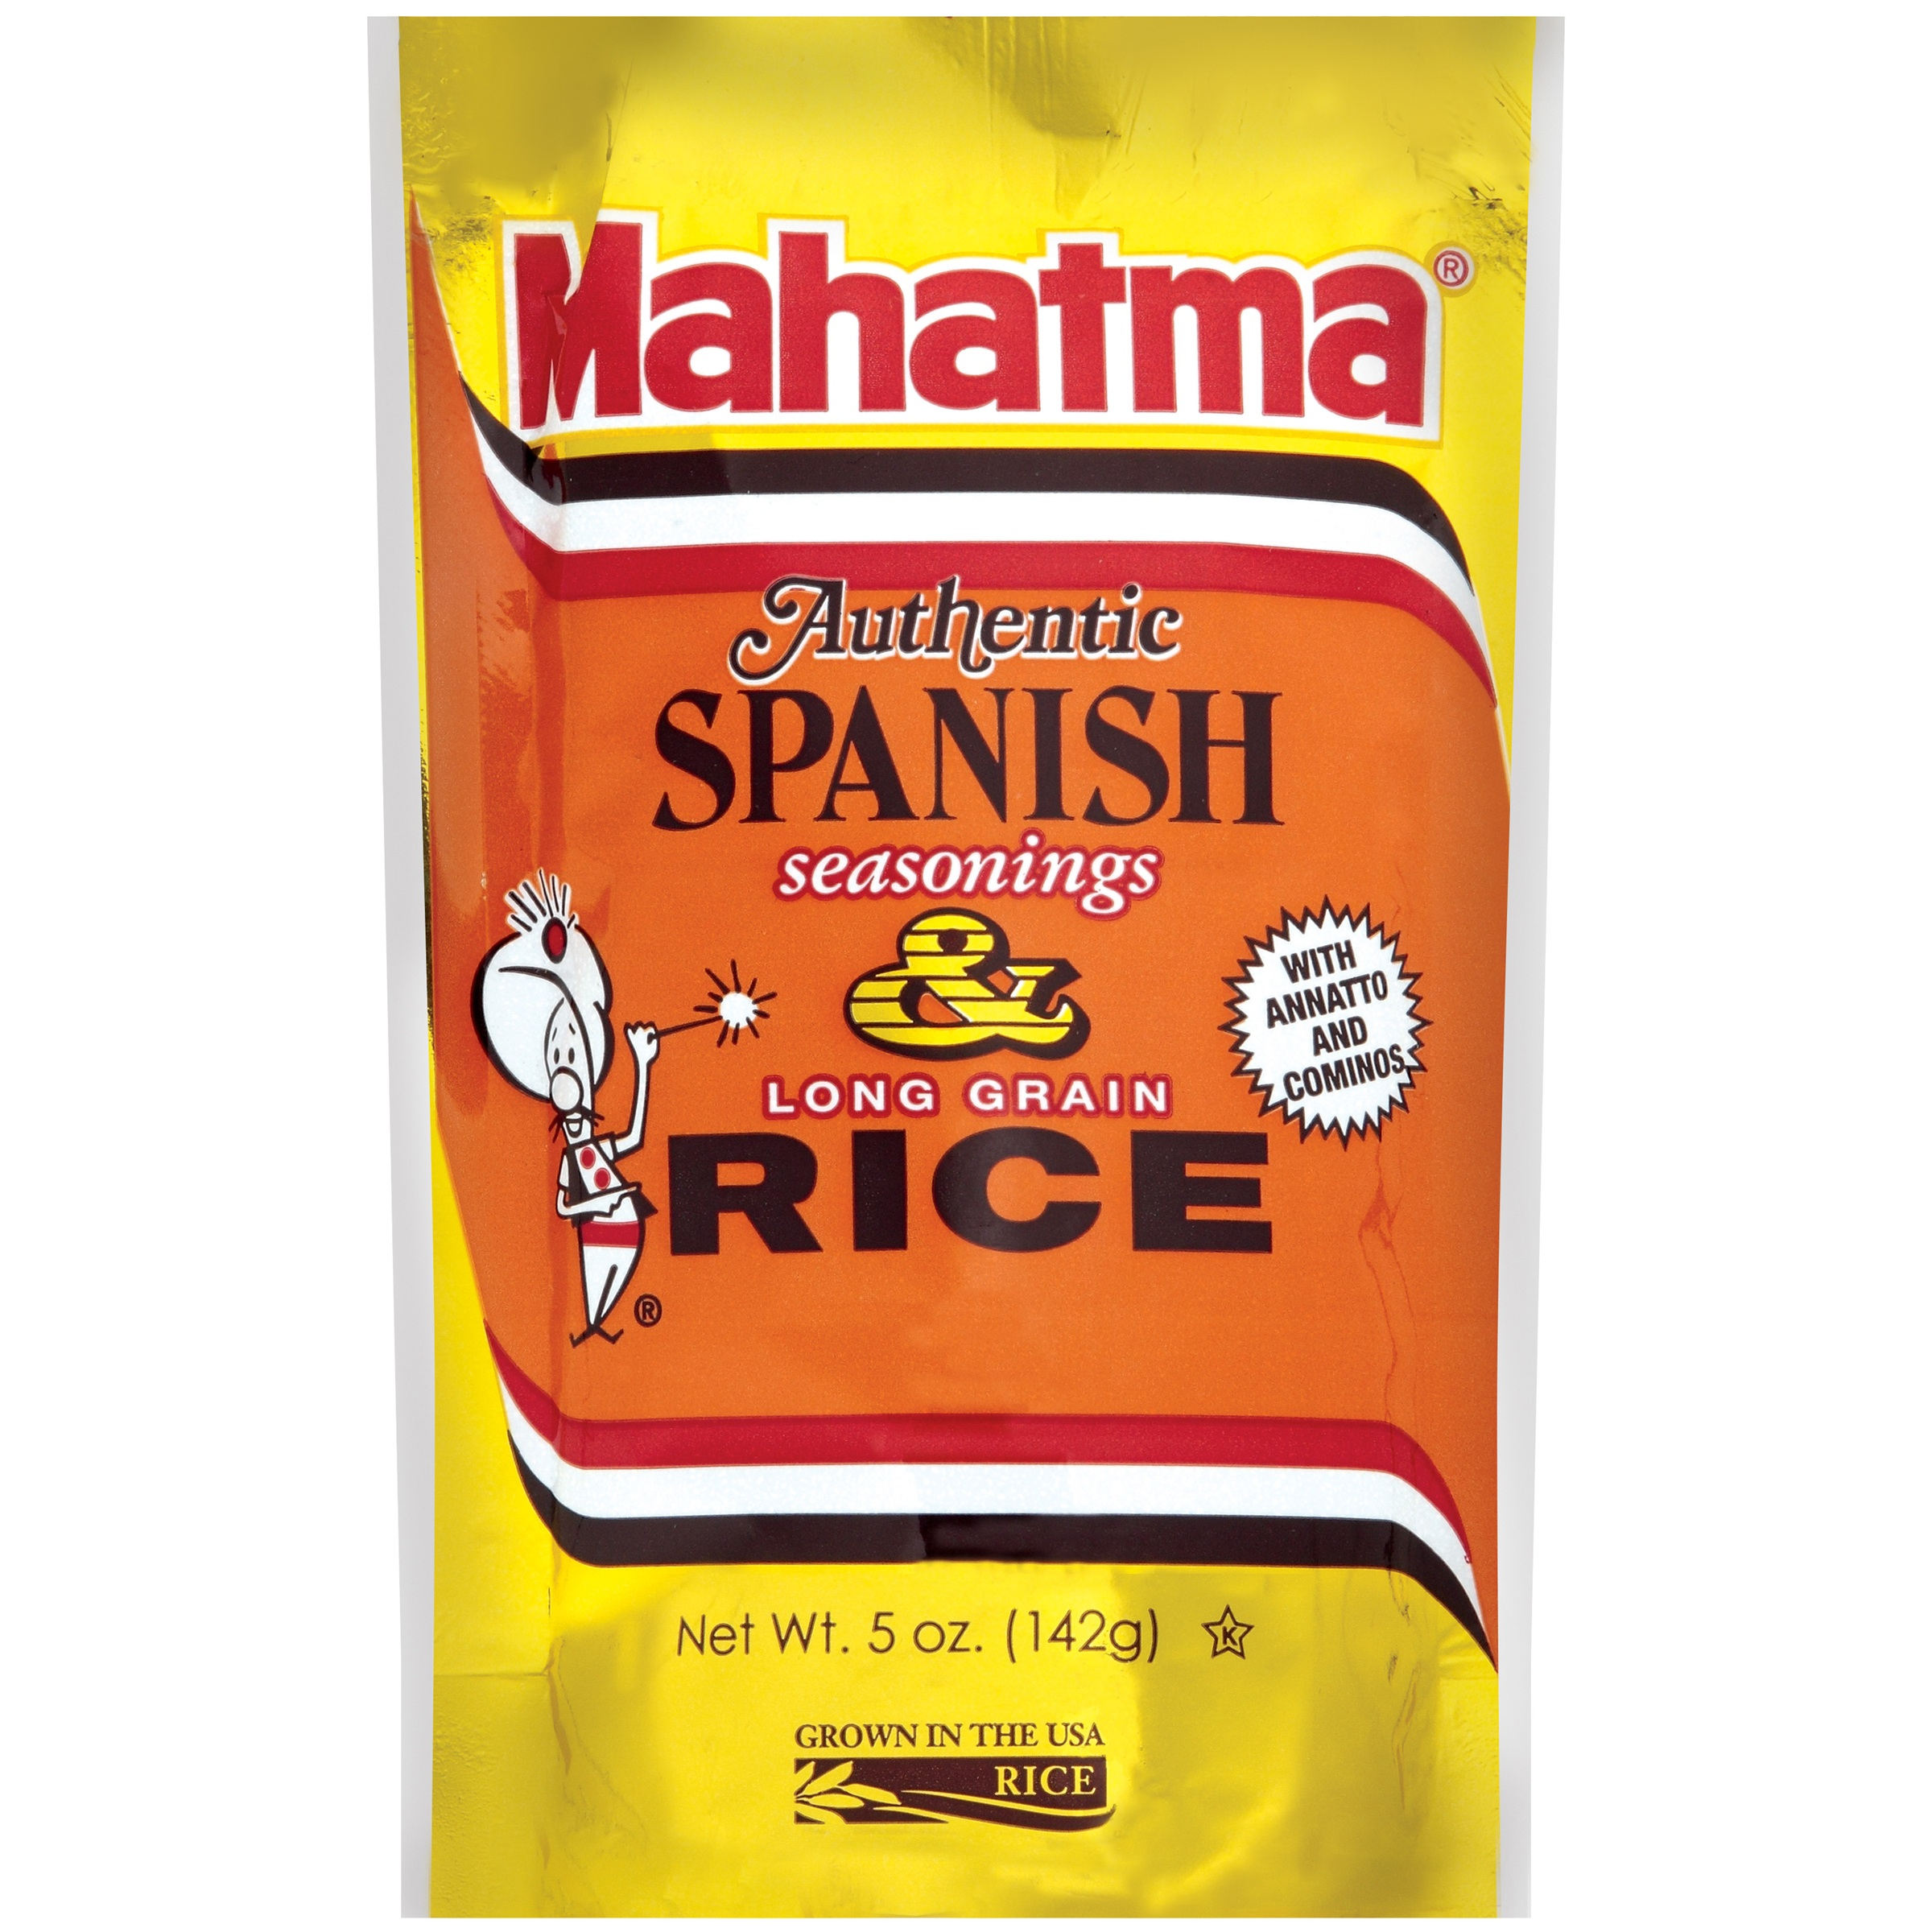 Mahatma® Authentic Spanish Seasonings & Long Grain Rice 5 oz.